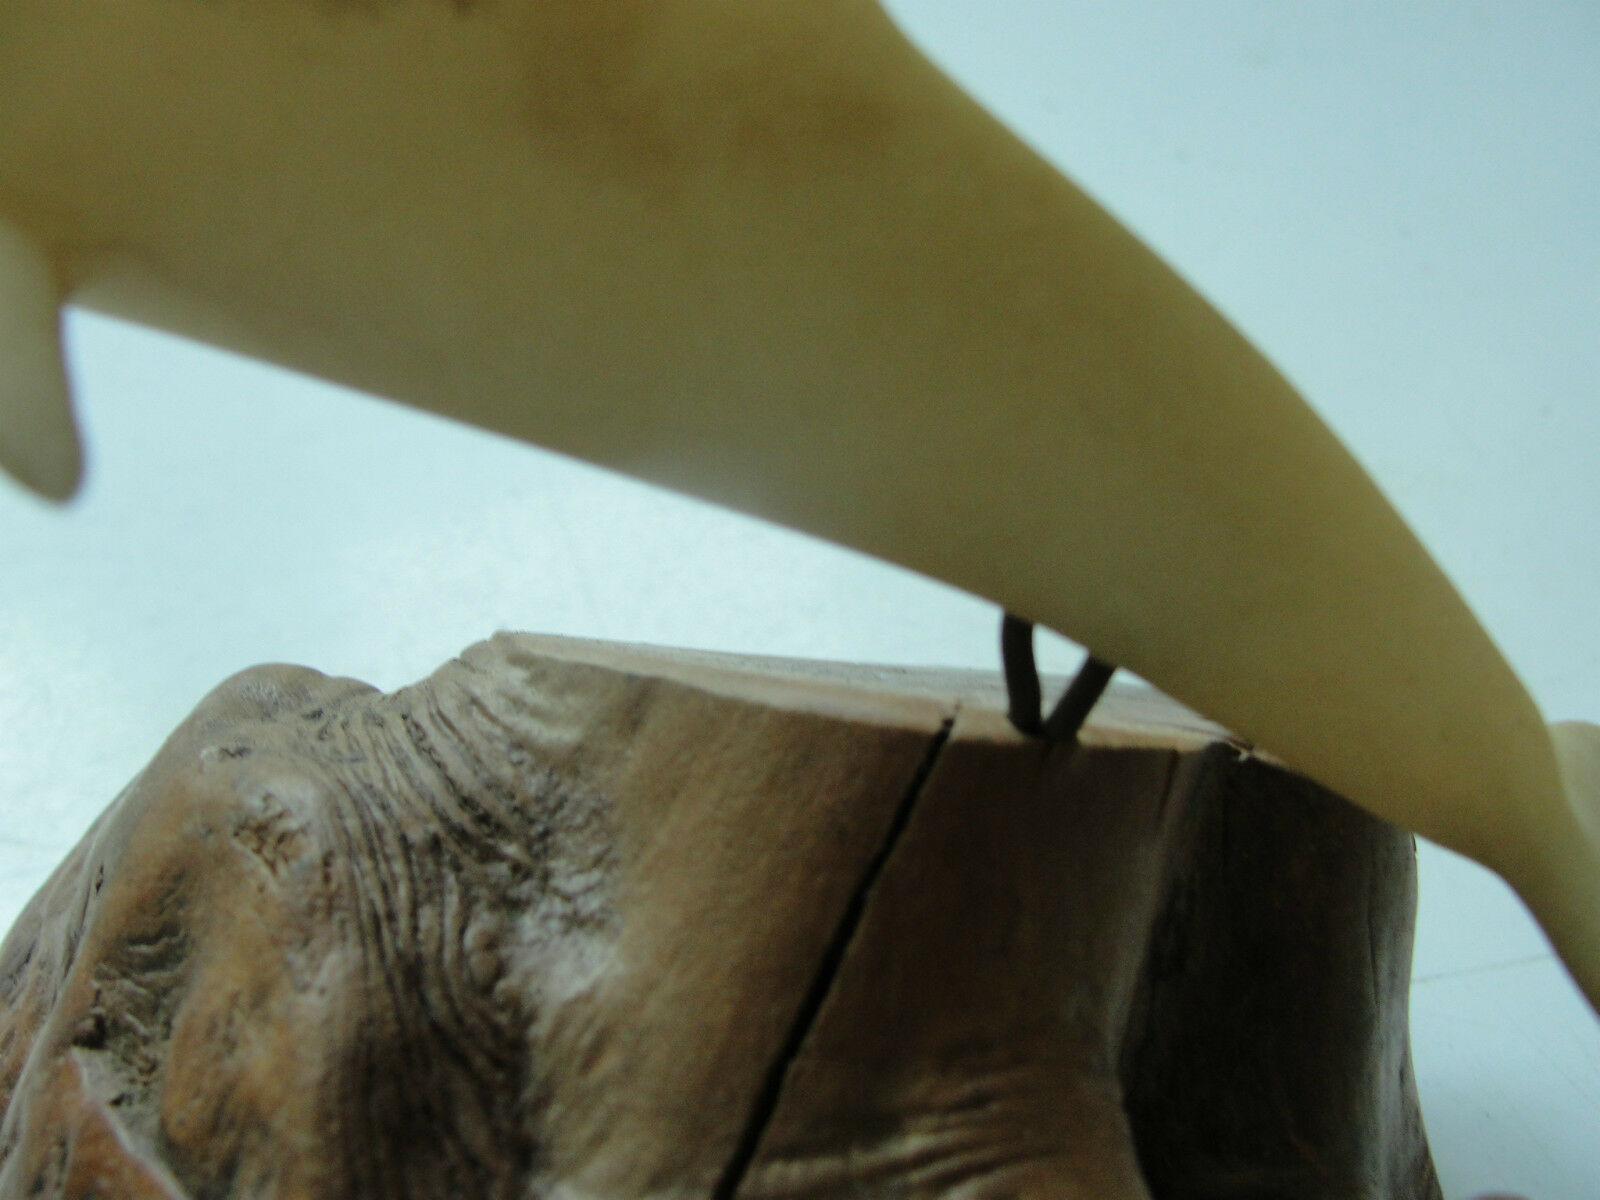 John Perry white dolphin on wood, carving